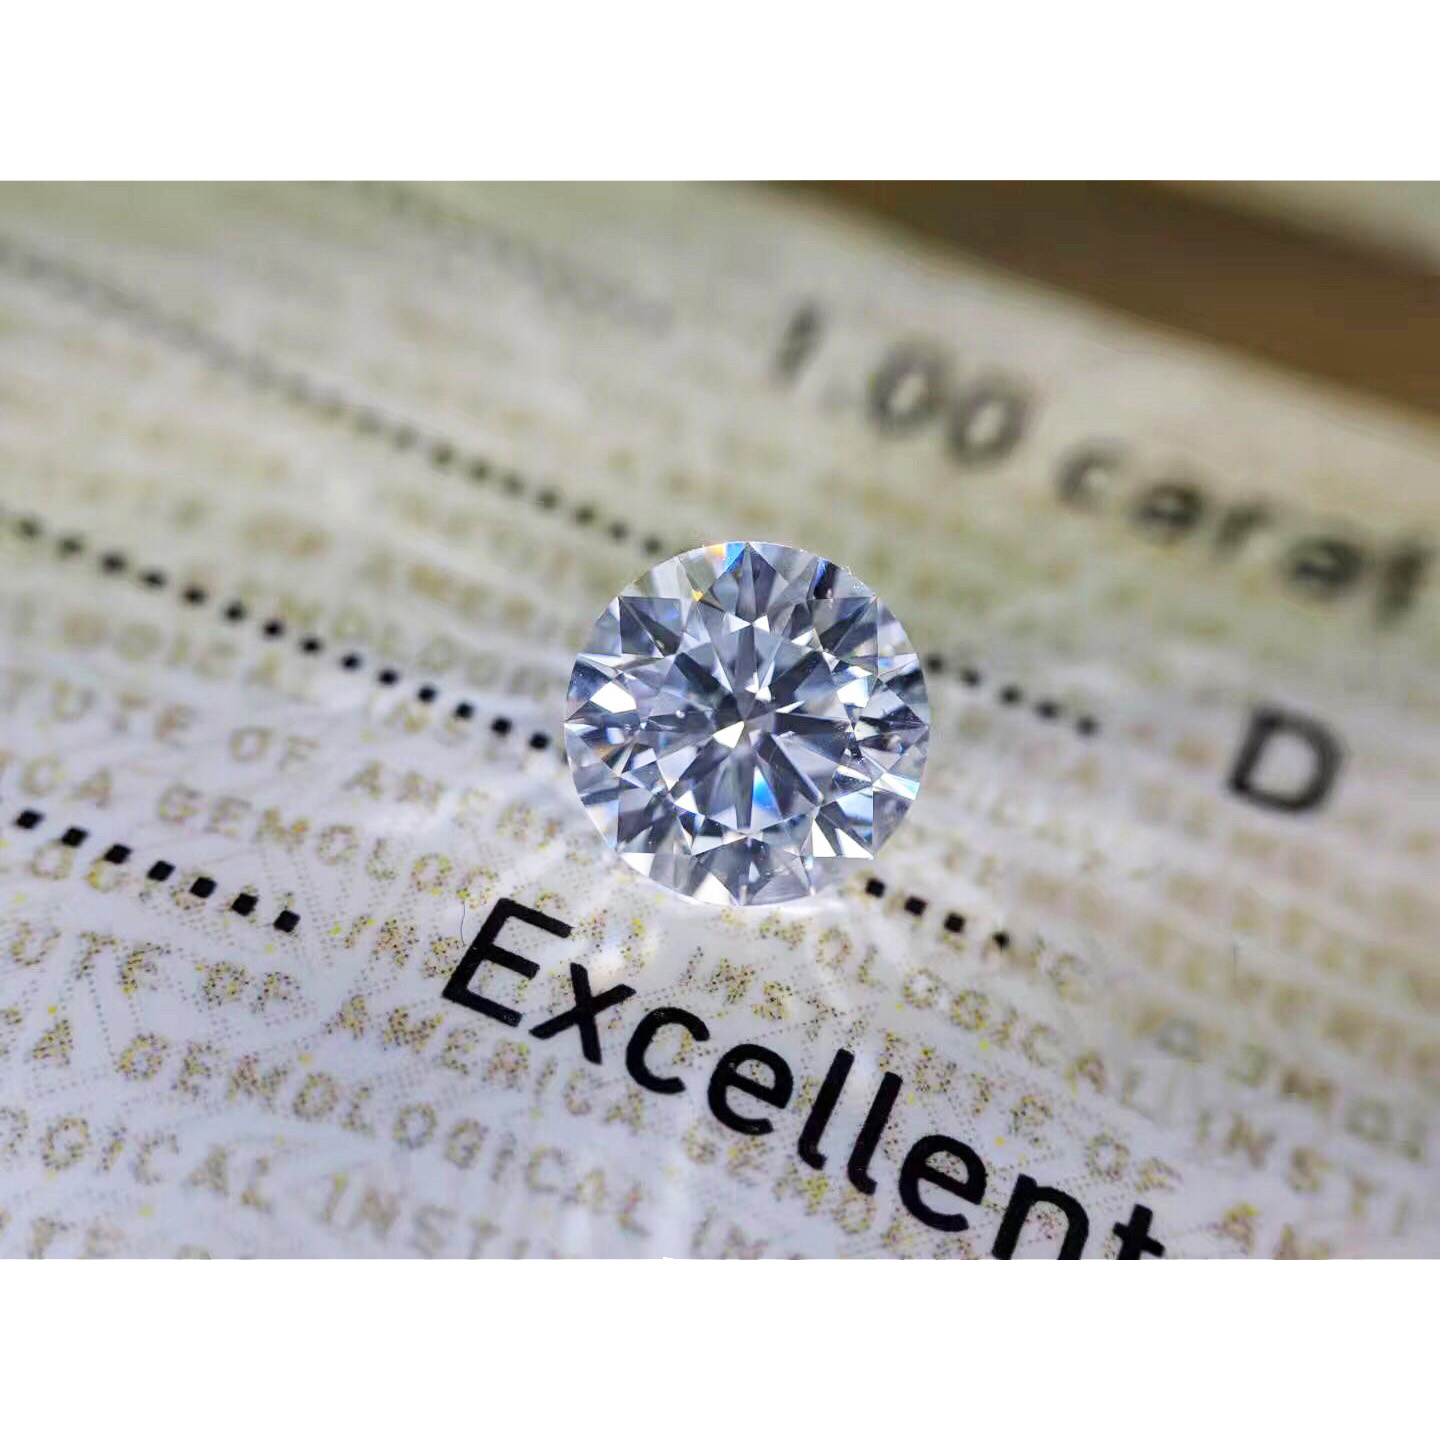 1ct Carat 6.5mm D Color loose moissanite Round Brilliant Cut Lab Grown Diamond Loose Stone VVS1 Excellent Cut